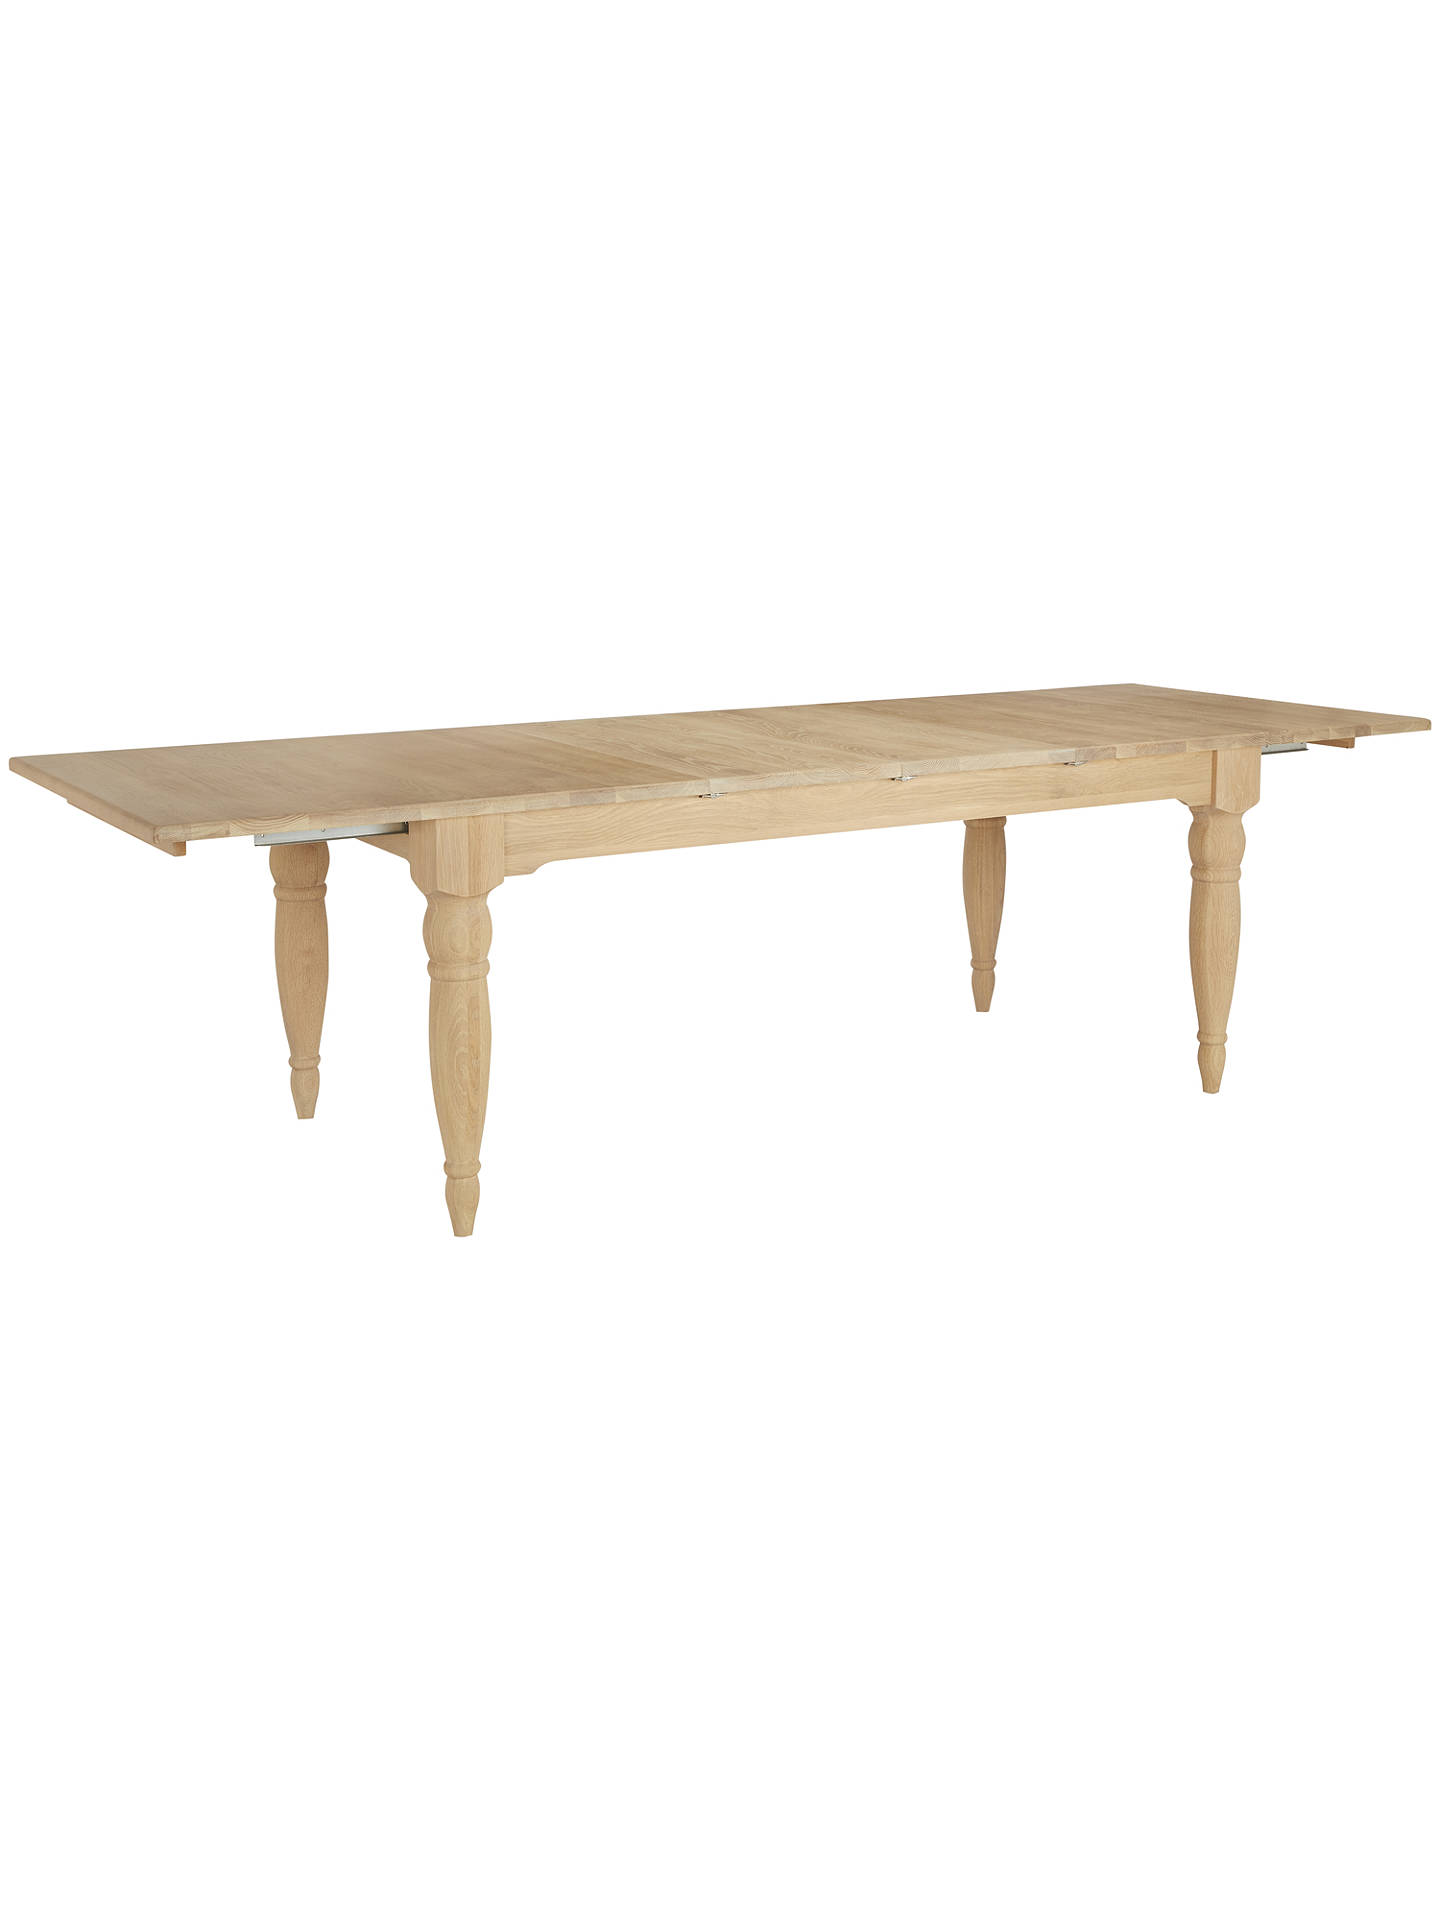 BuyCroft Collection Easdale 6-8 Seater Extending Dining Table, Oak Online at johnlewis.com